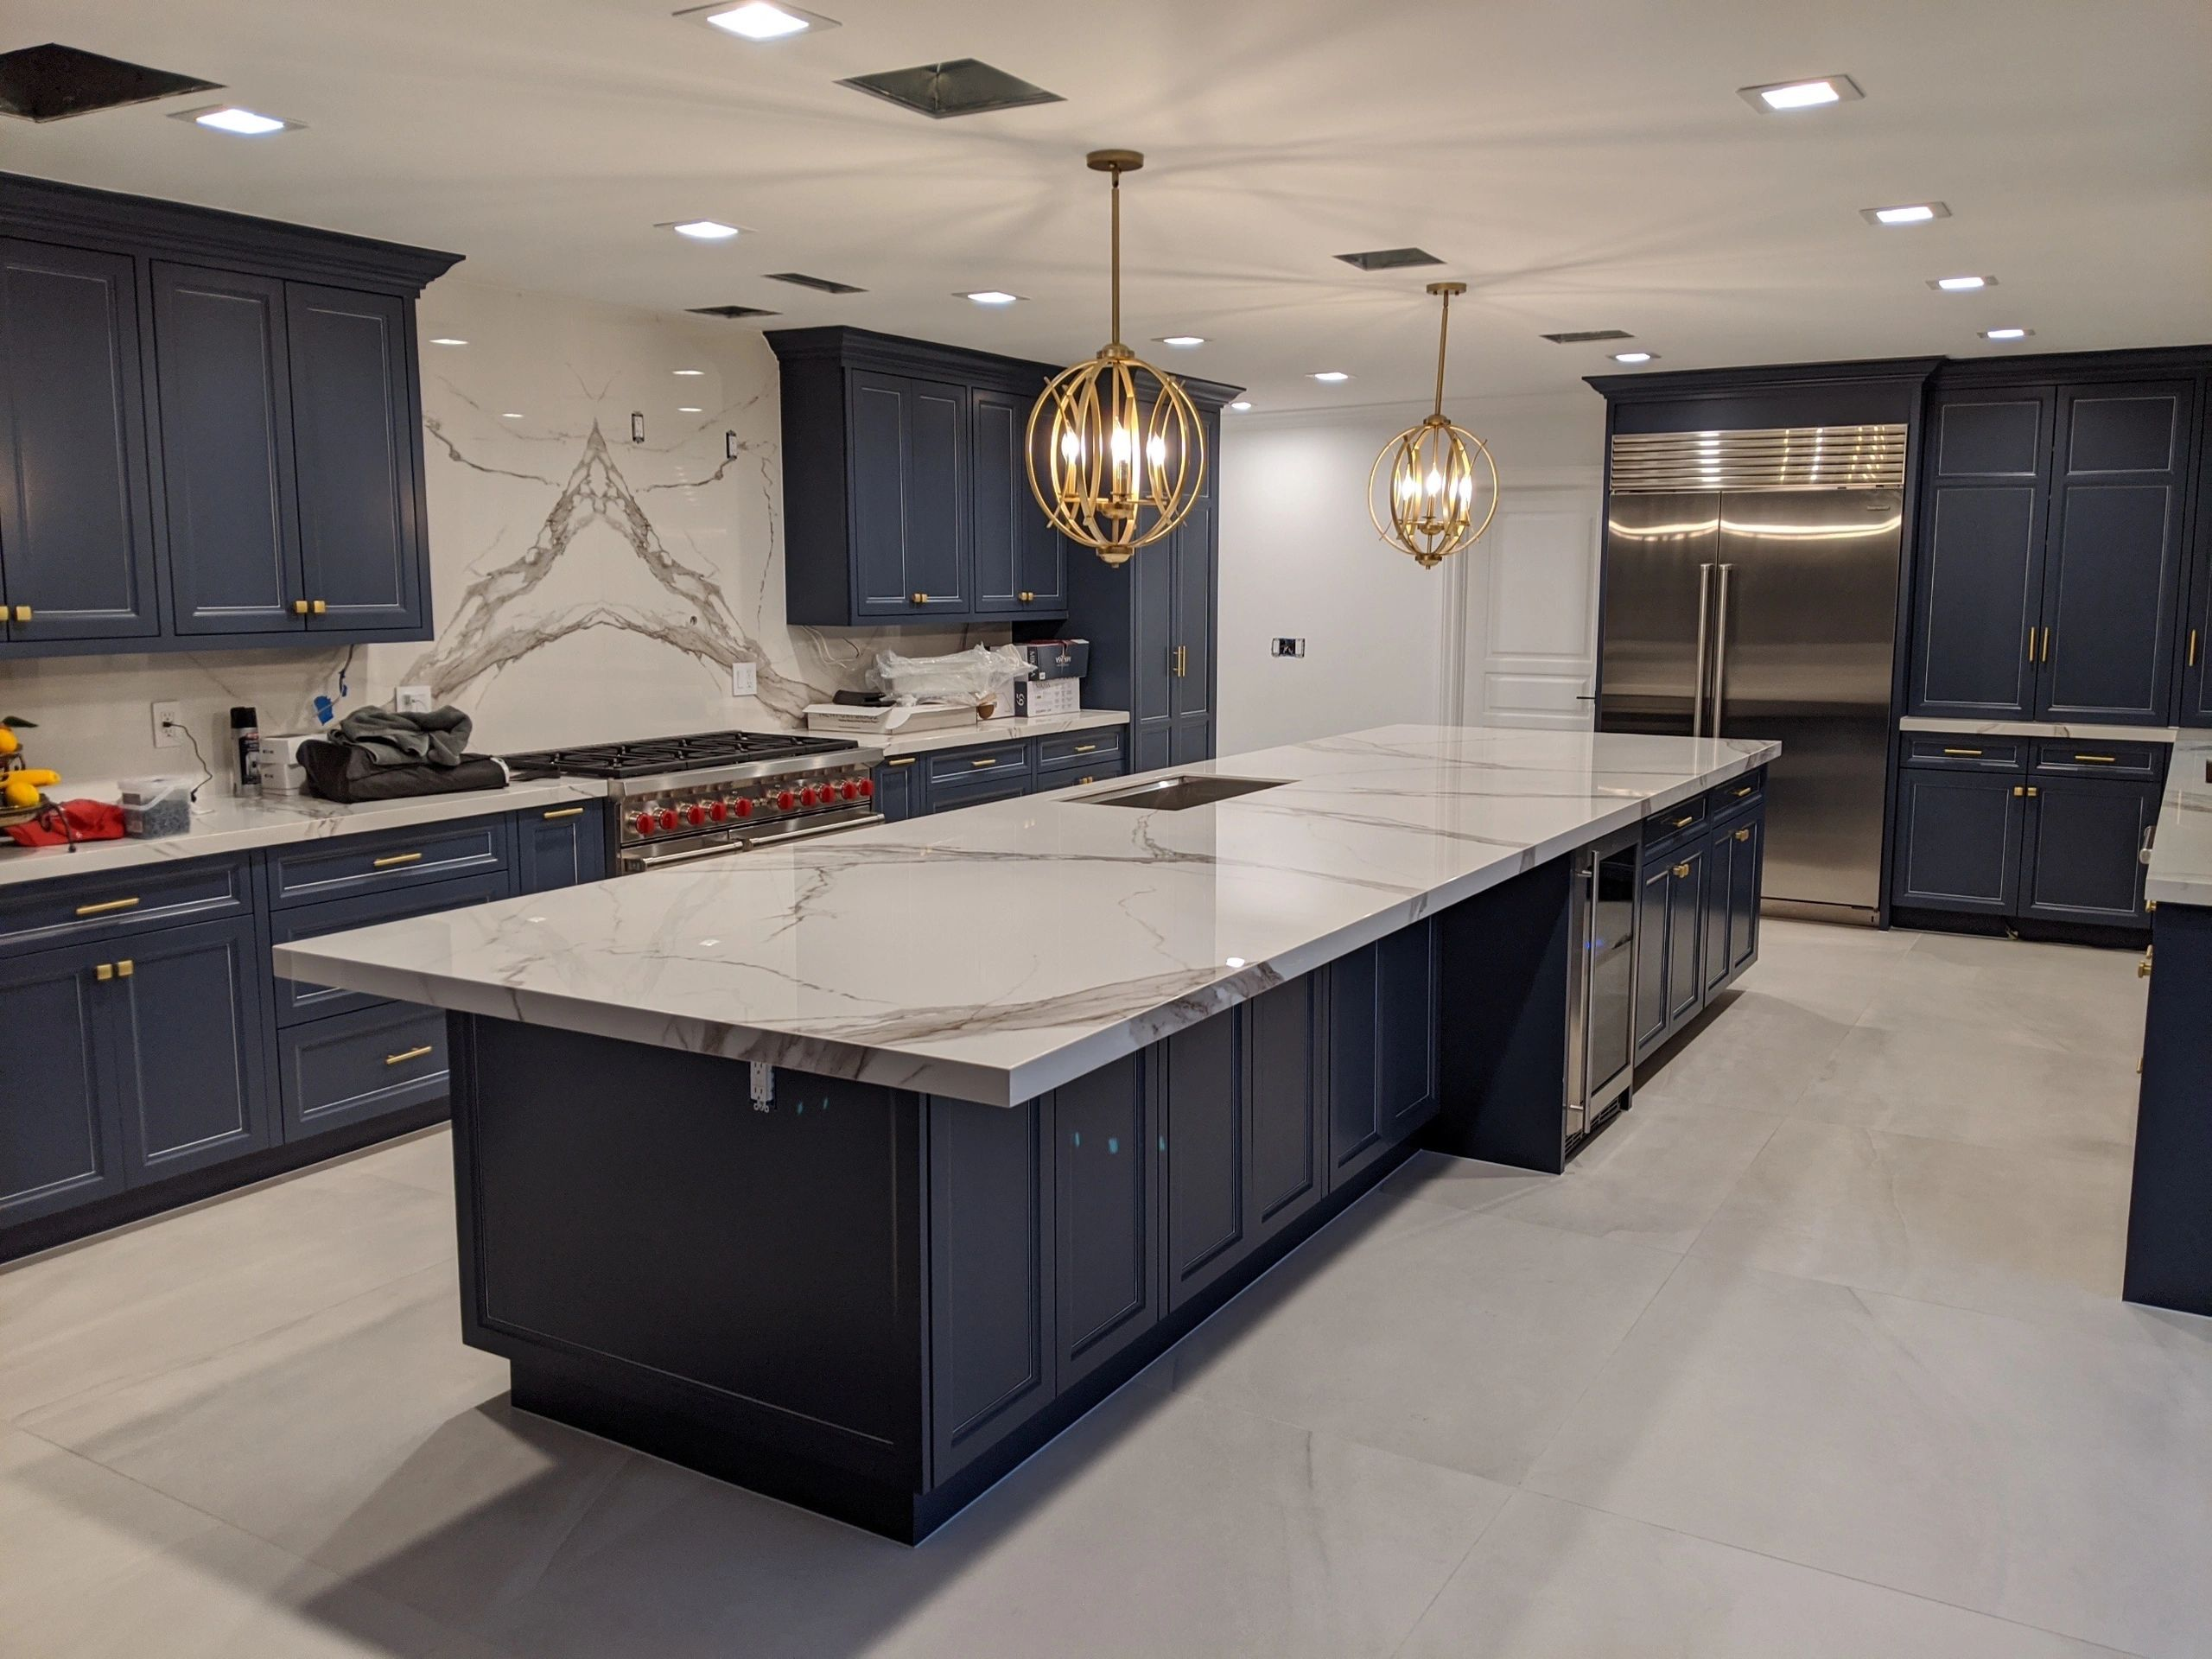 - Book-matching Porcelain Slabs For Countertop And Backsplash